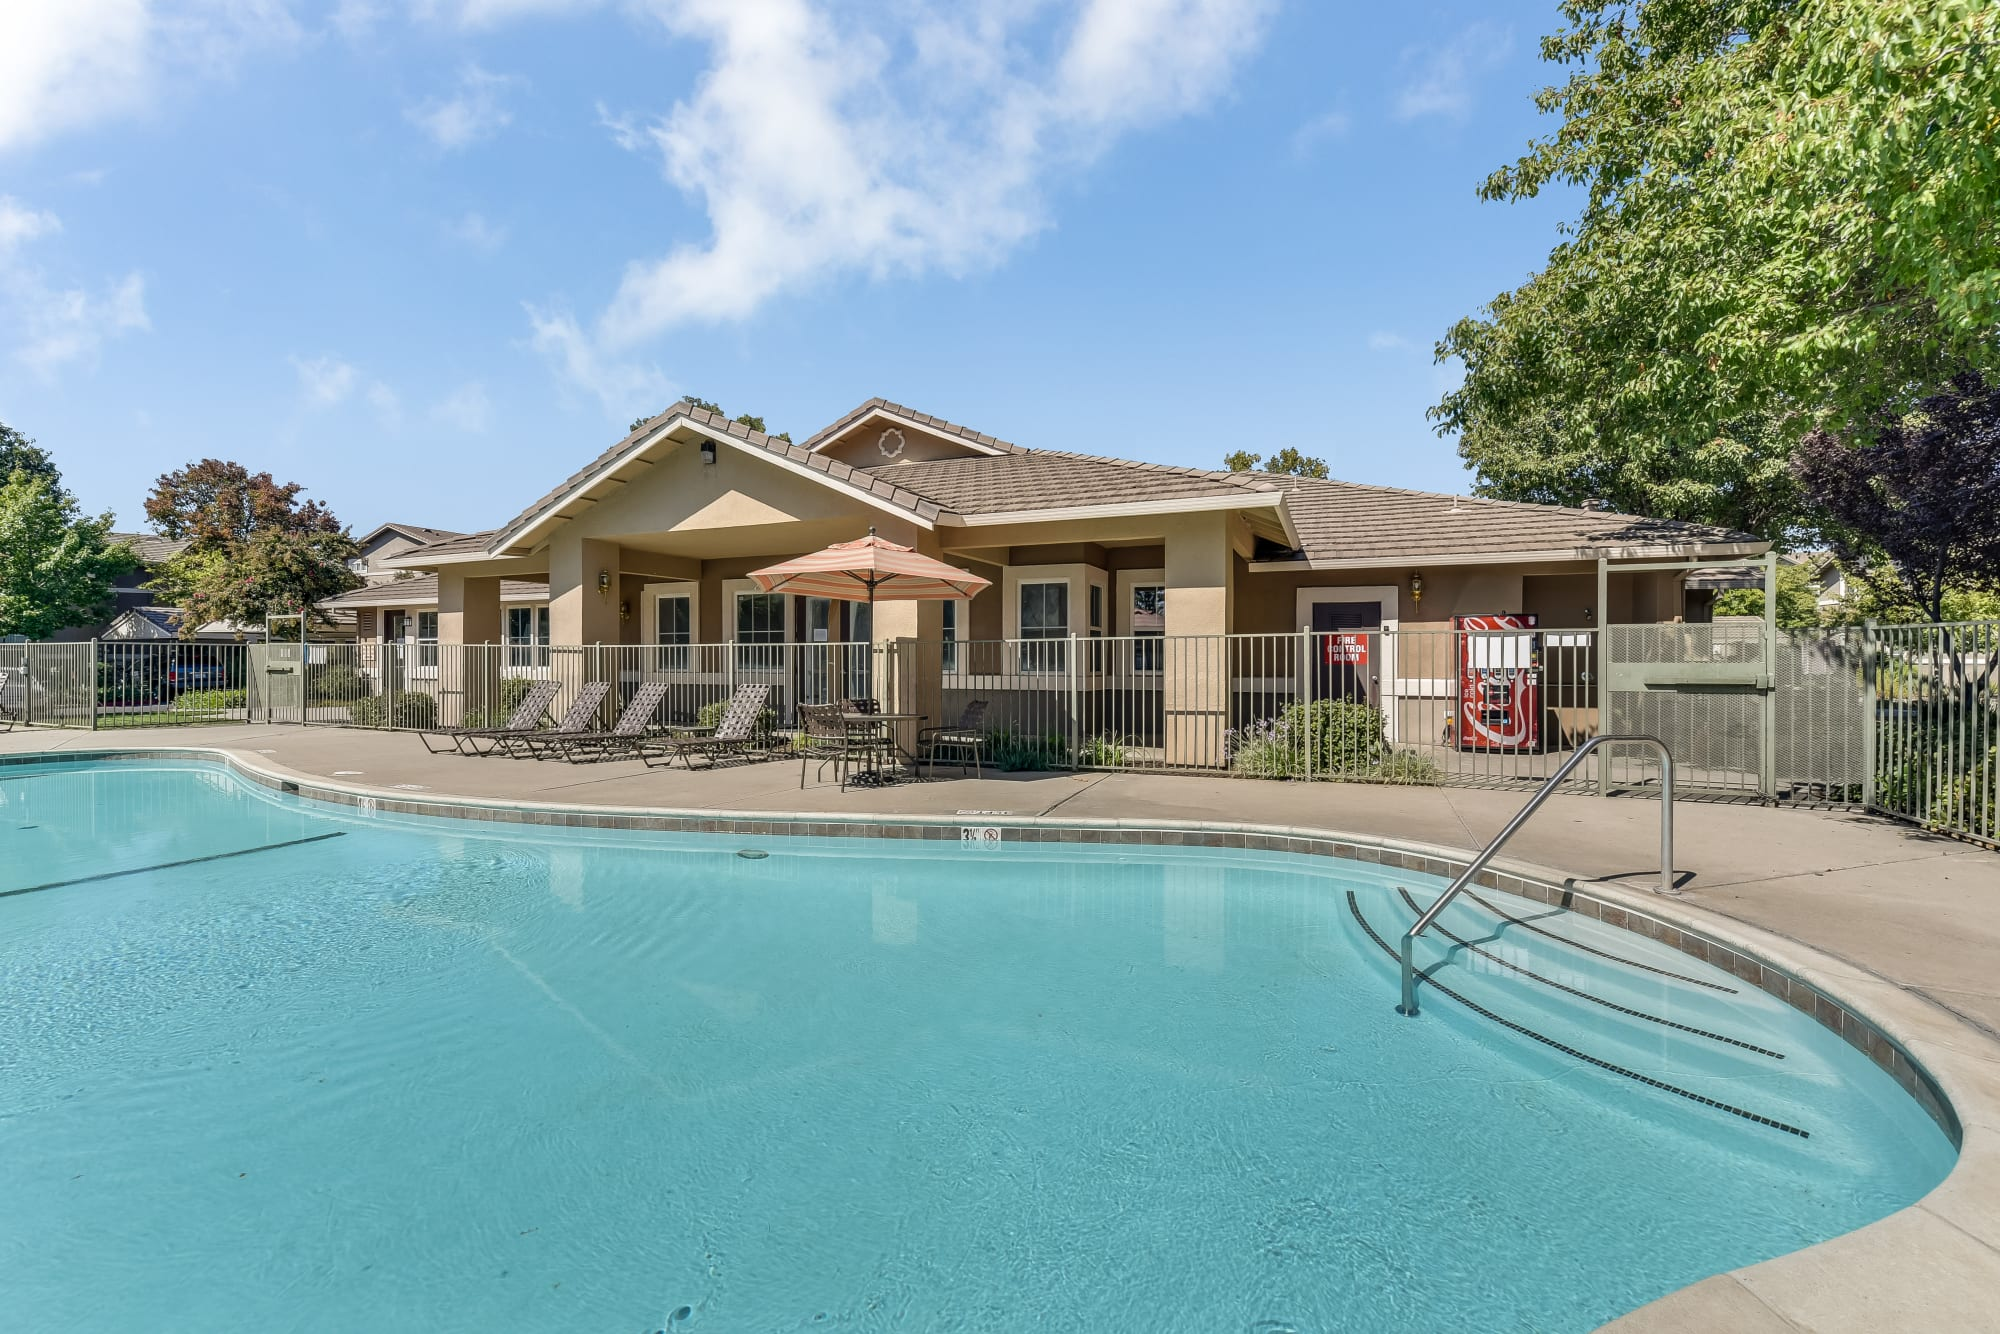 The pool and clubhouse at Natomas Park Apartments in Sacramento, California